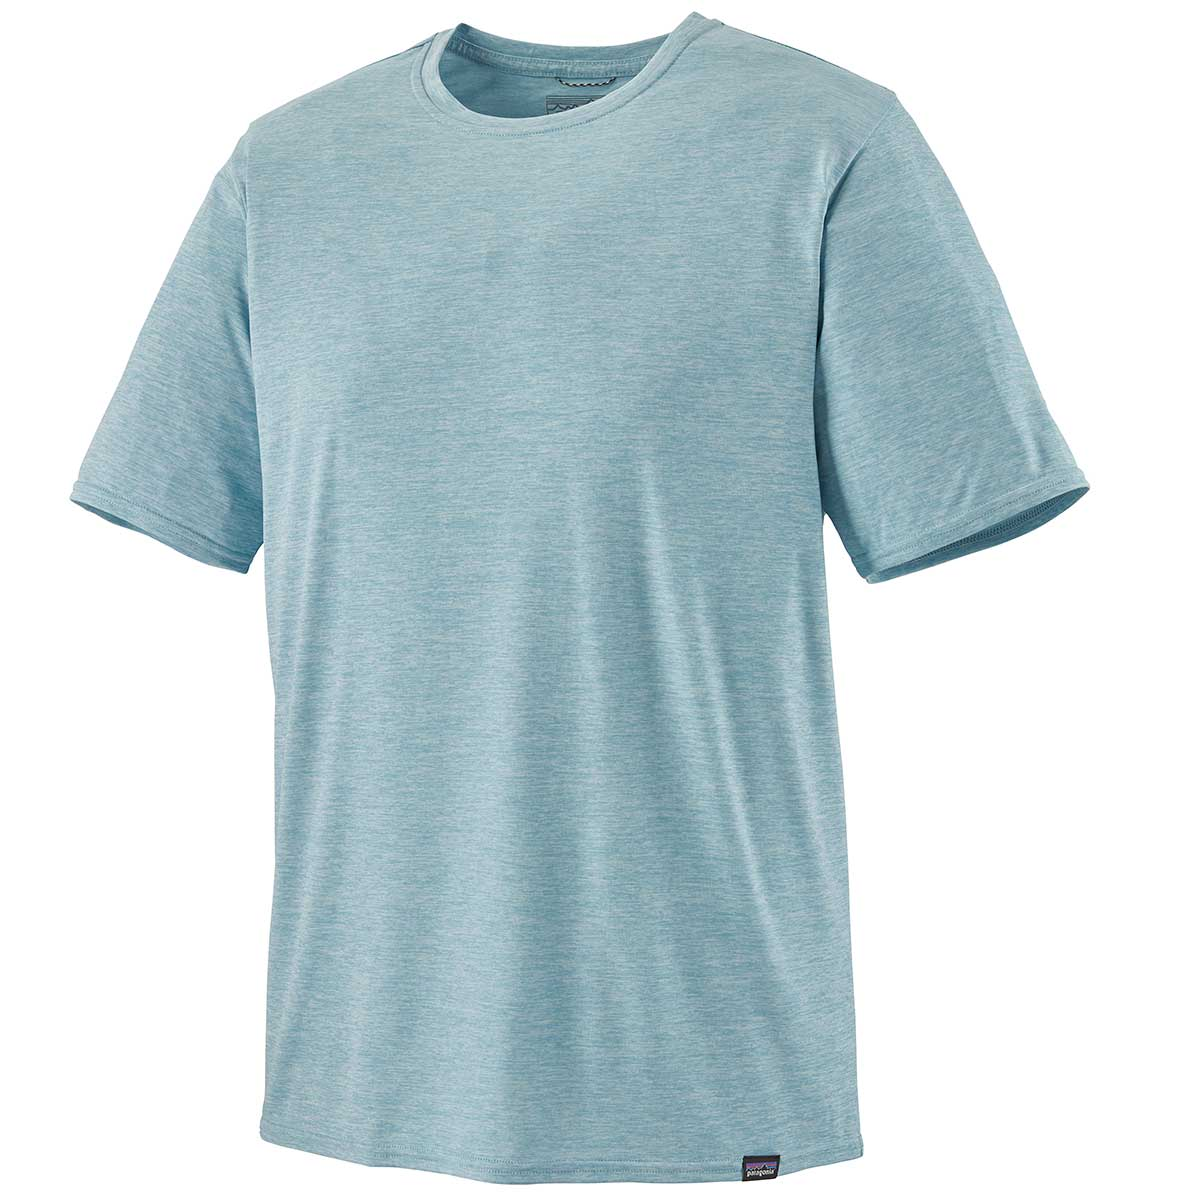 Patagonia men's Capilene Cool Daily Shirt in Big Sky Blue front view